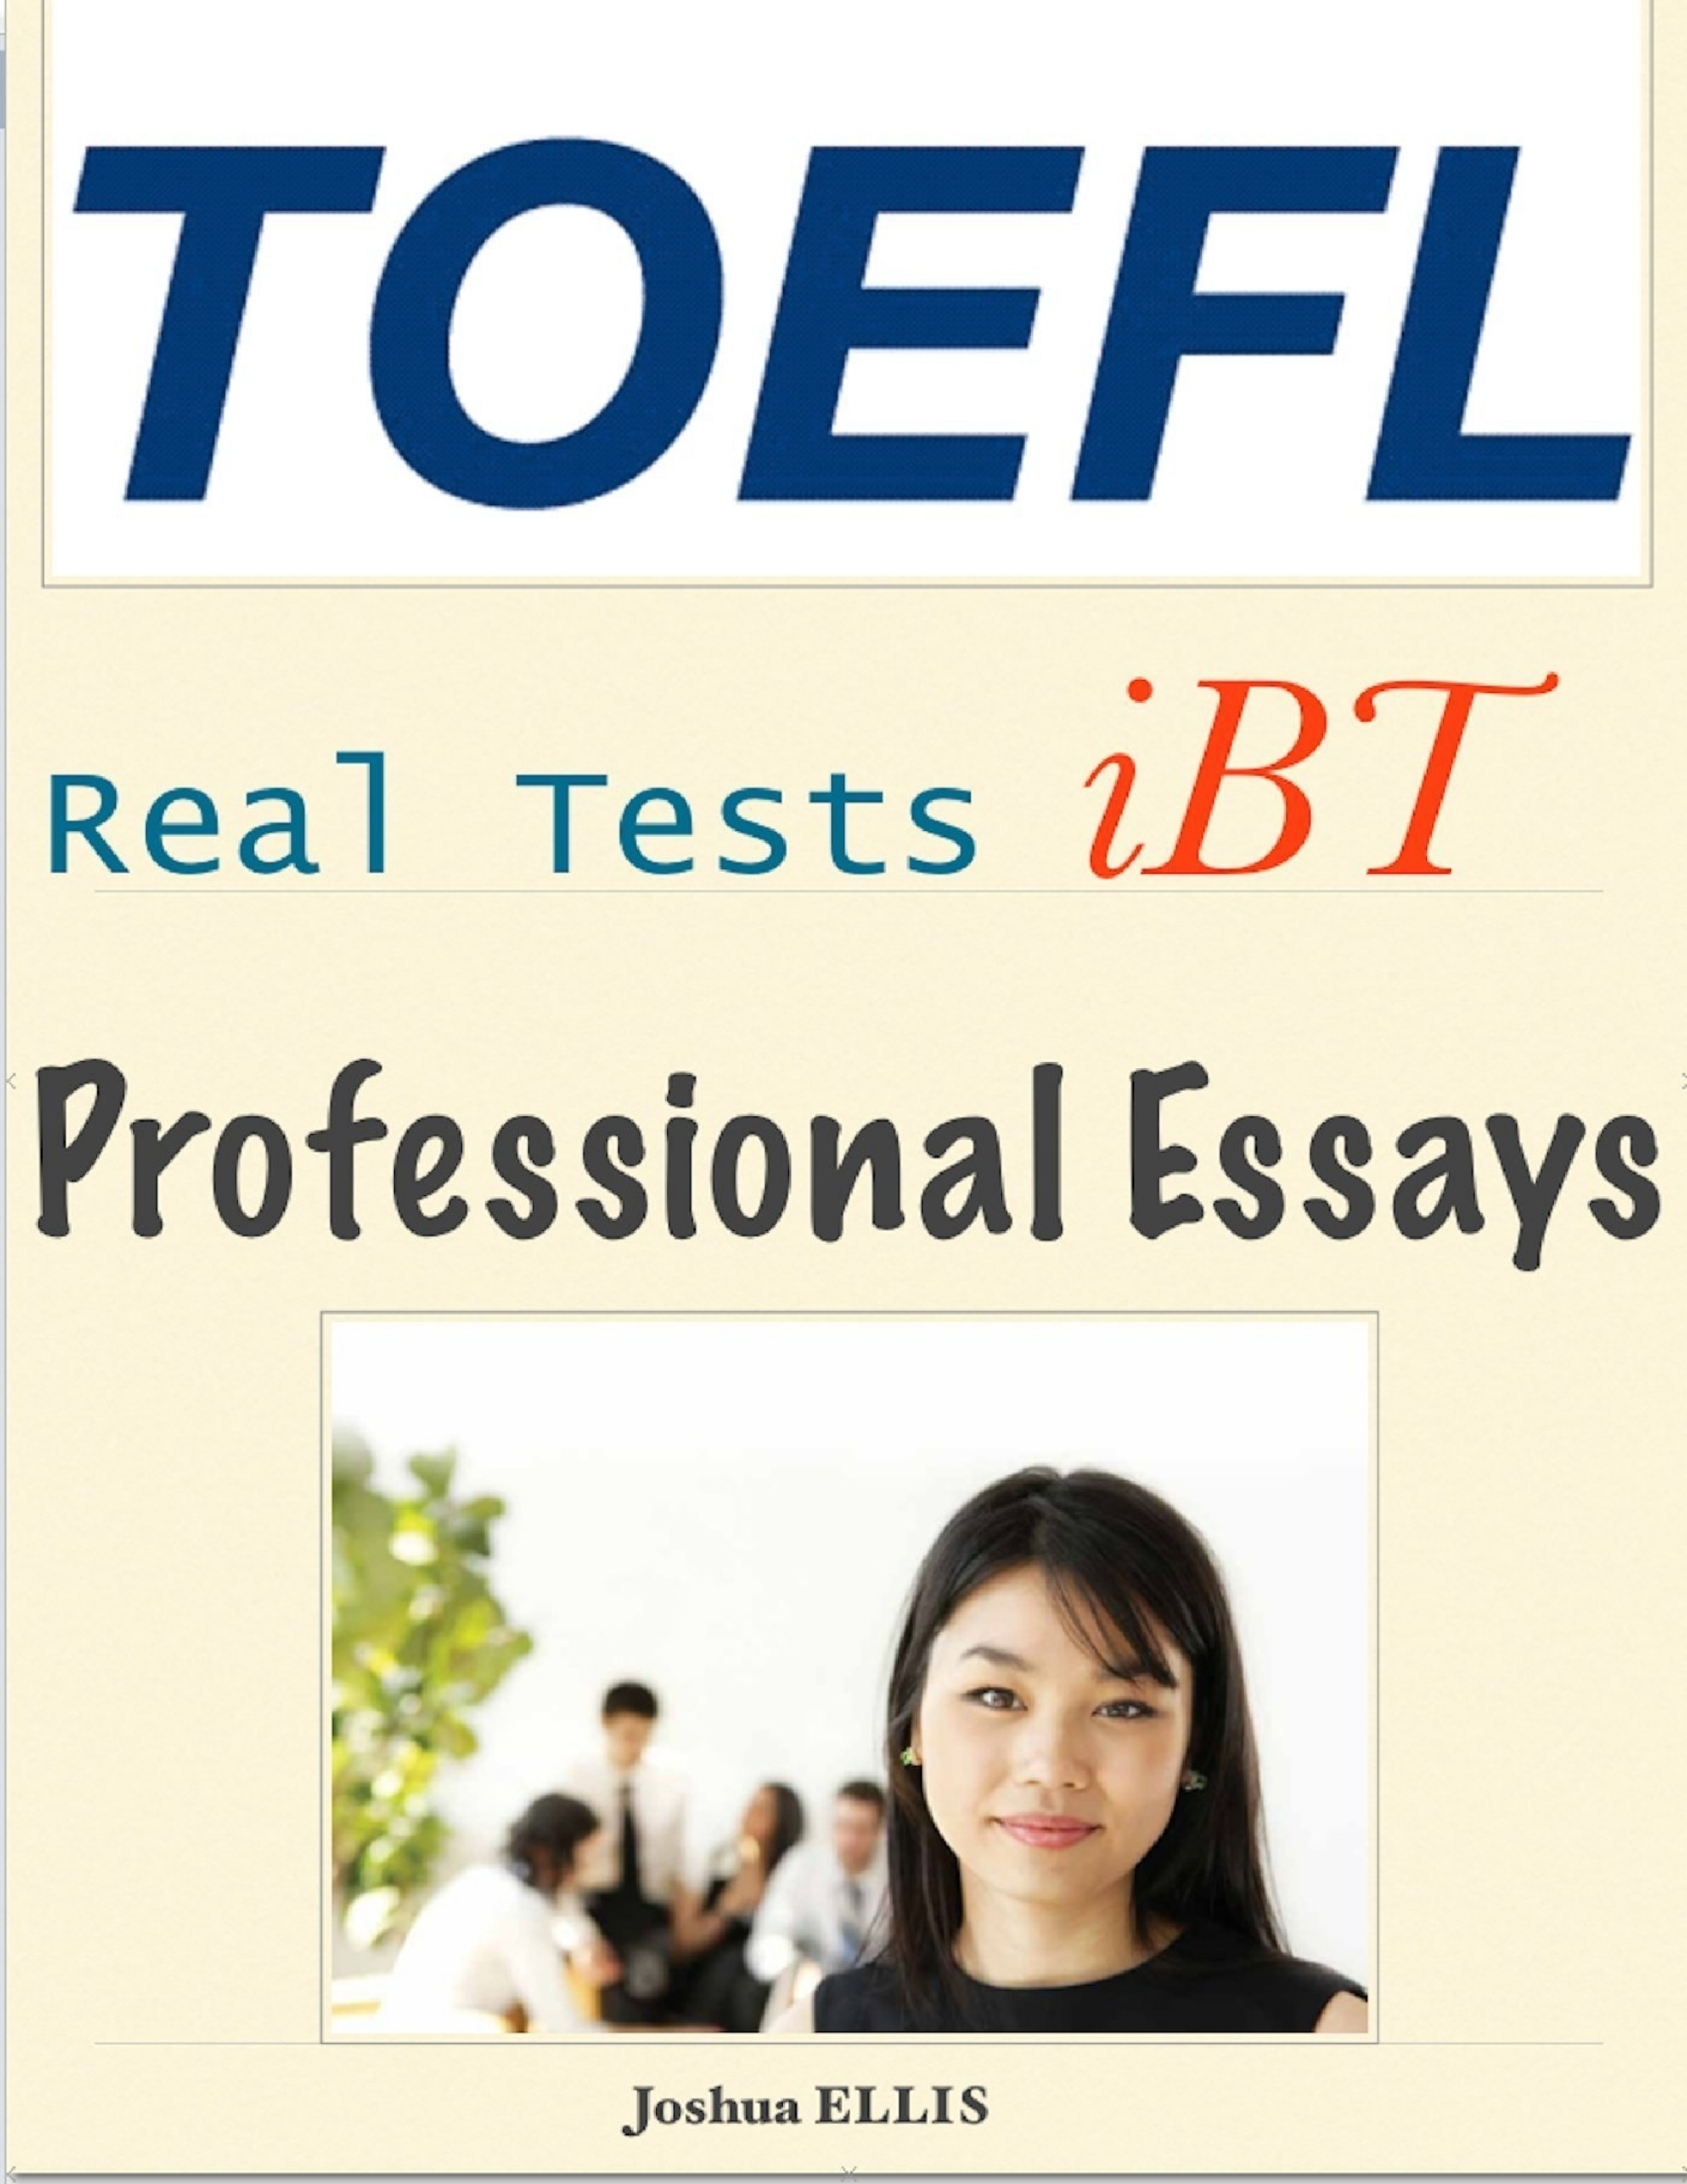 essays toefl ibt Today we will talk about the best custom essay writing service you could only dream about our proposition is the custom essays written right for you.